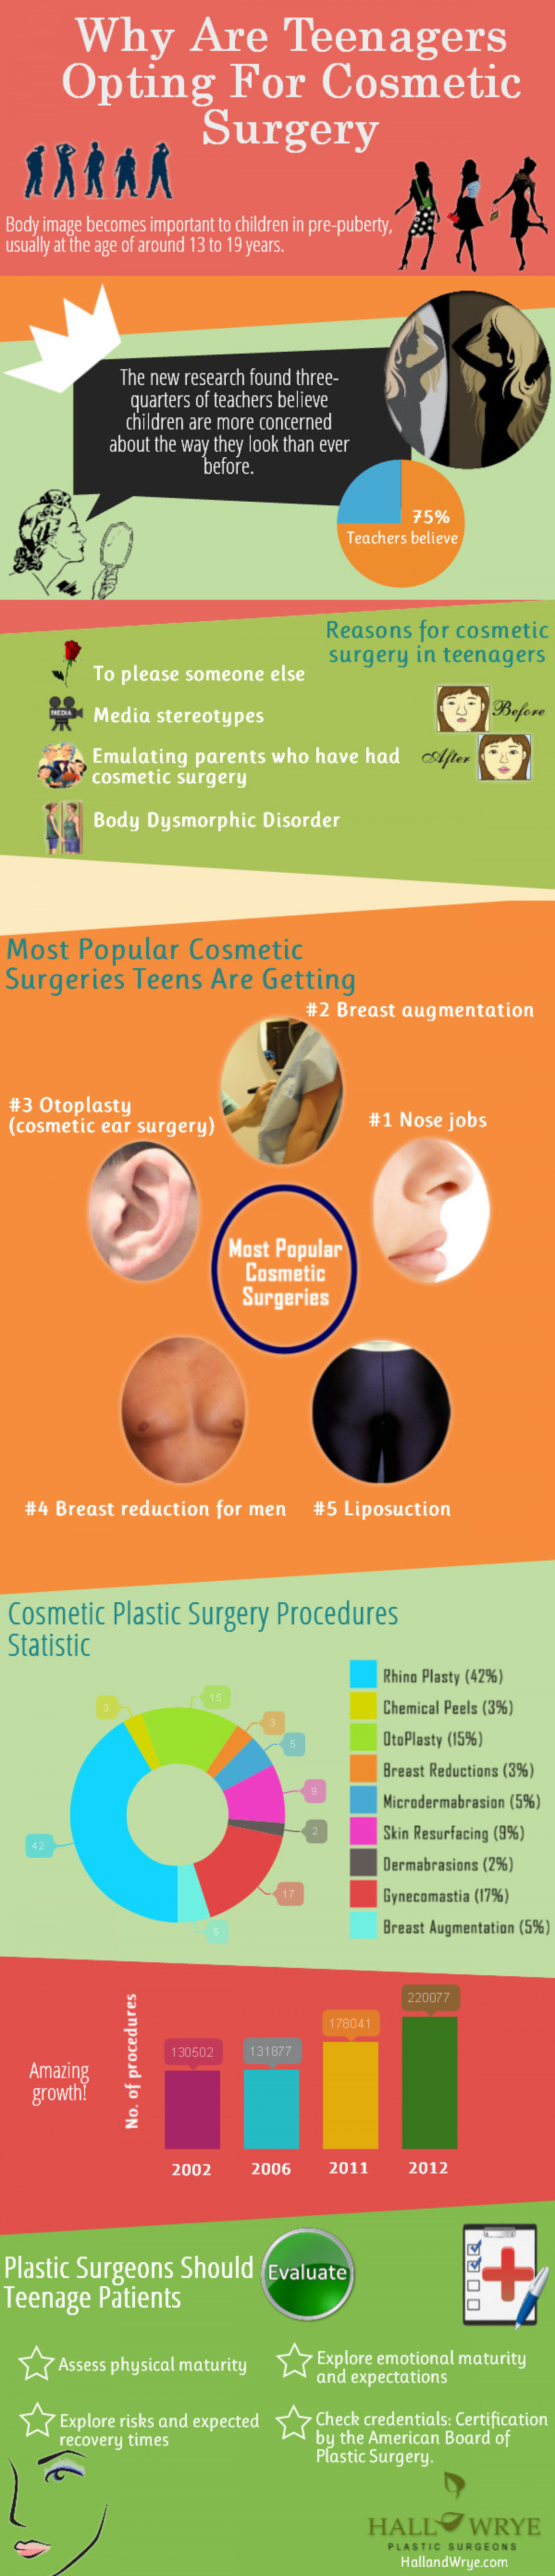 Why Are Teenagers Opting For Cosmetic Surgery Infographic